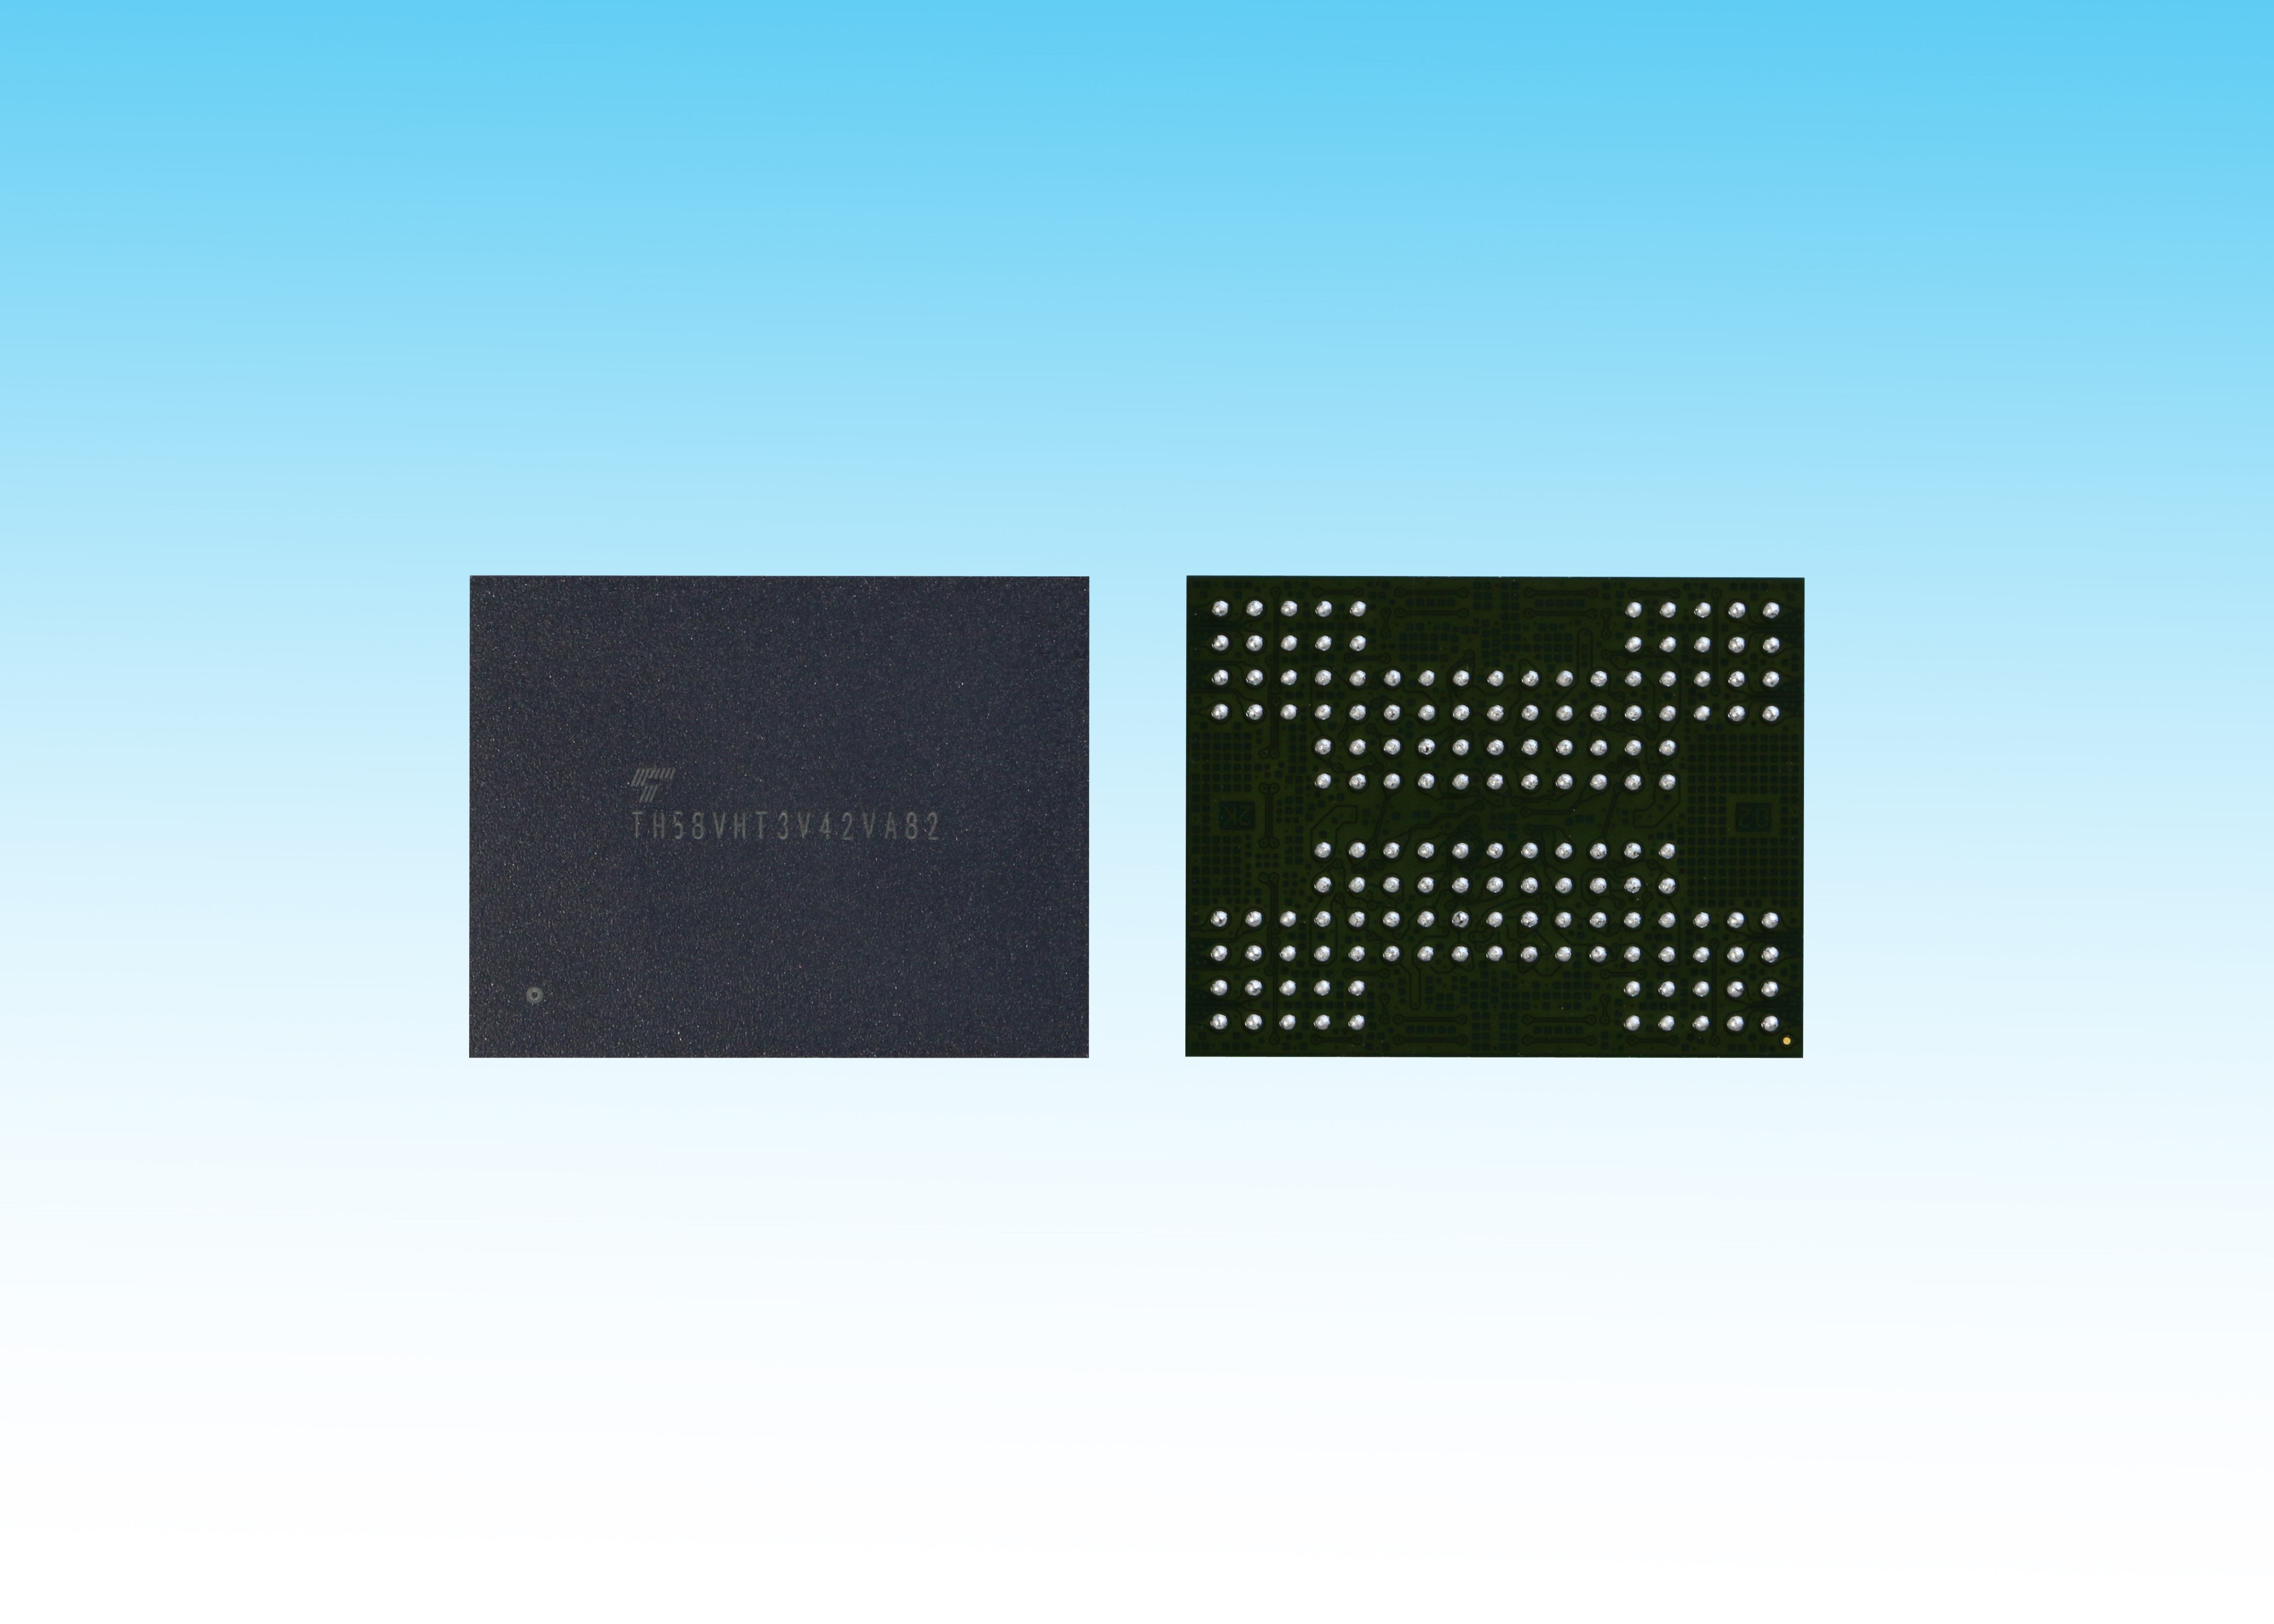 The World's First 3D Flash Memory with TSV Technology (Photo: Business Wire)